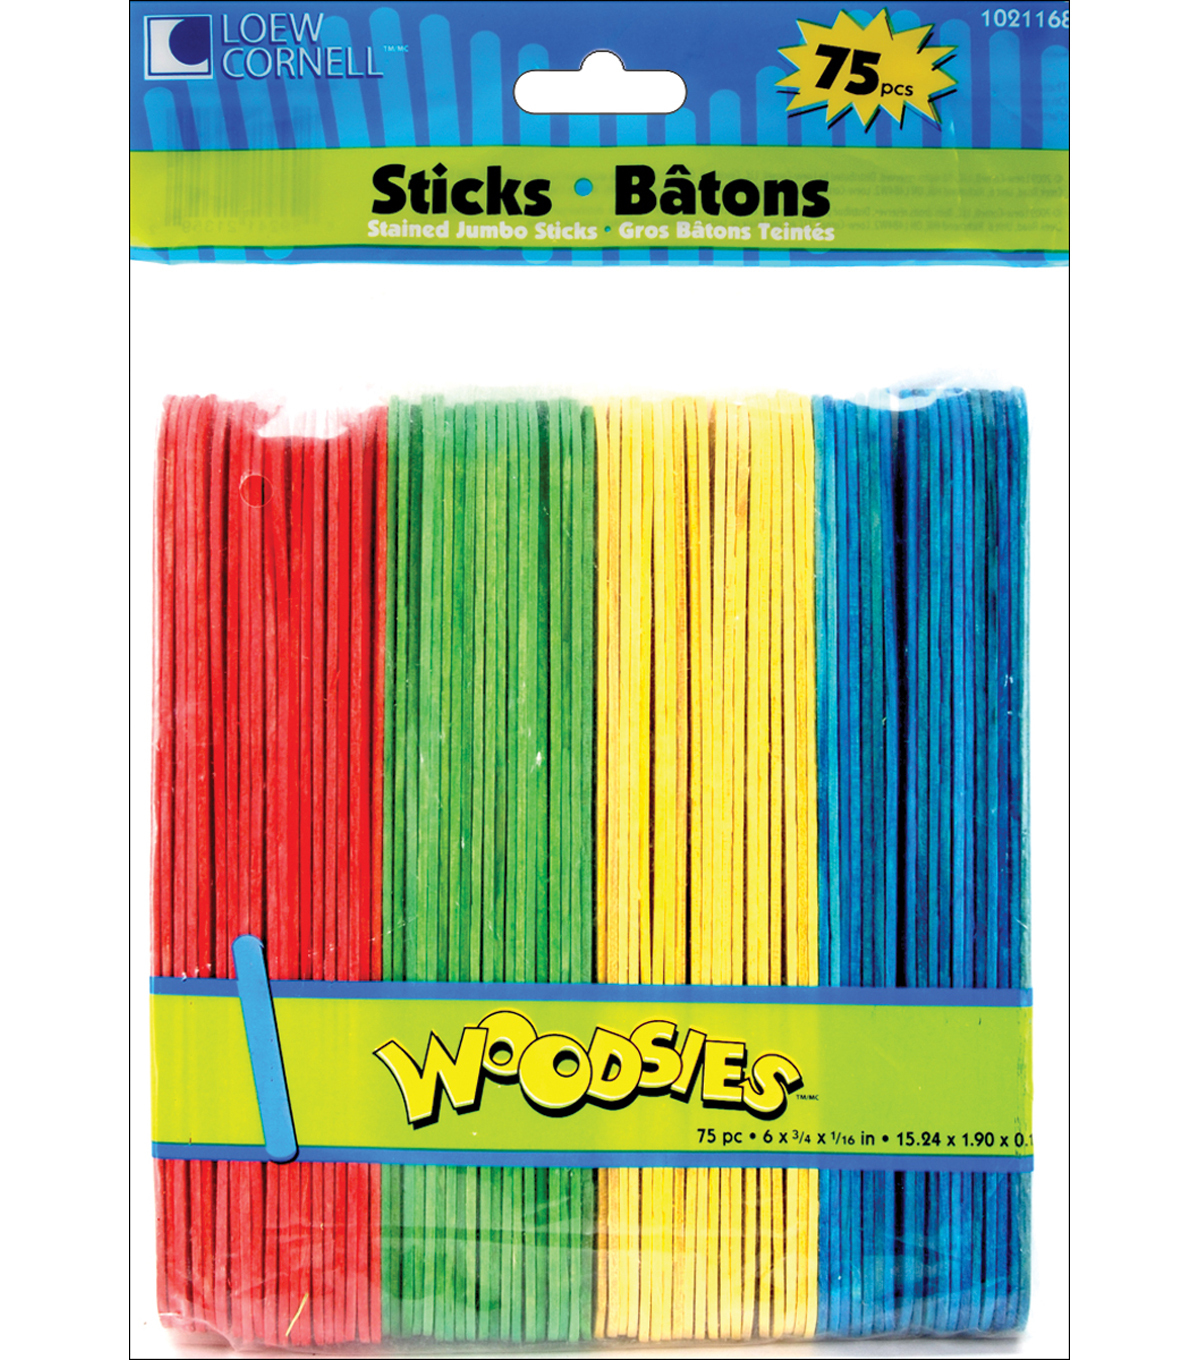 Loew-Cornell Woodsies 75 pk Jumbo Craft Sticks-Assorted Colors